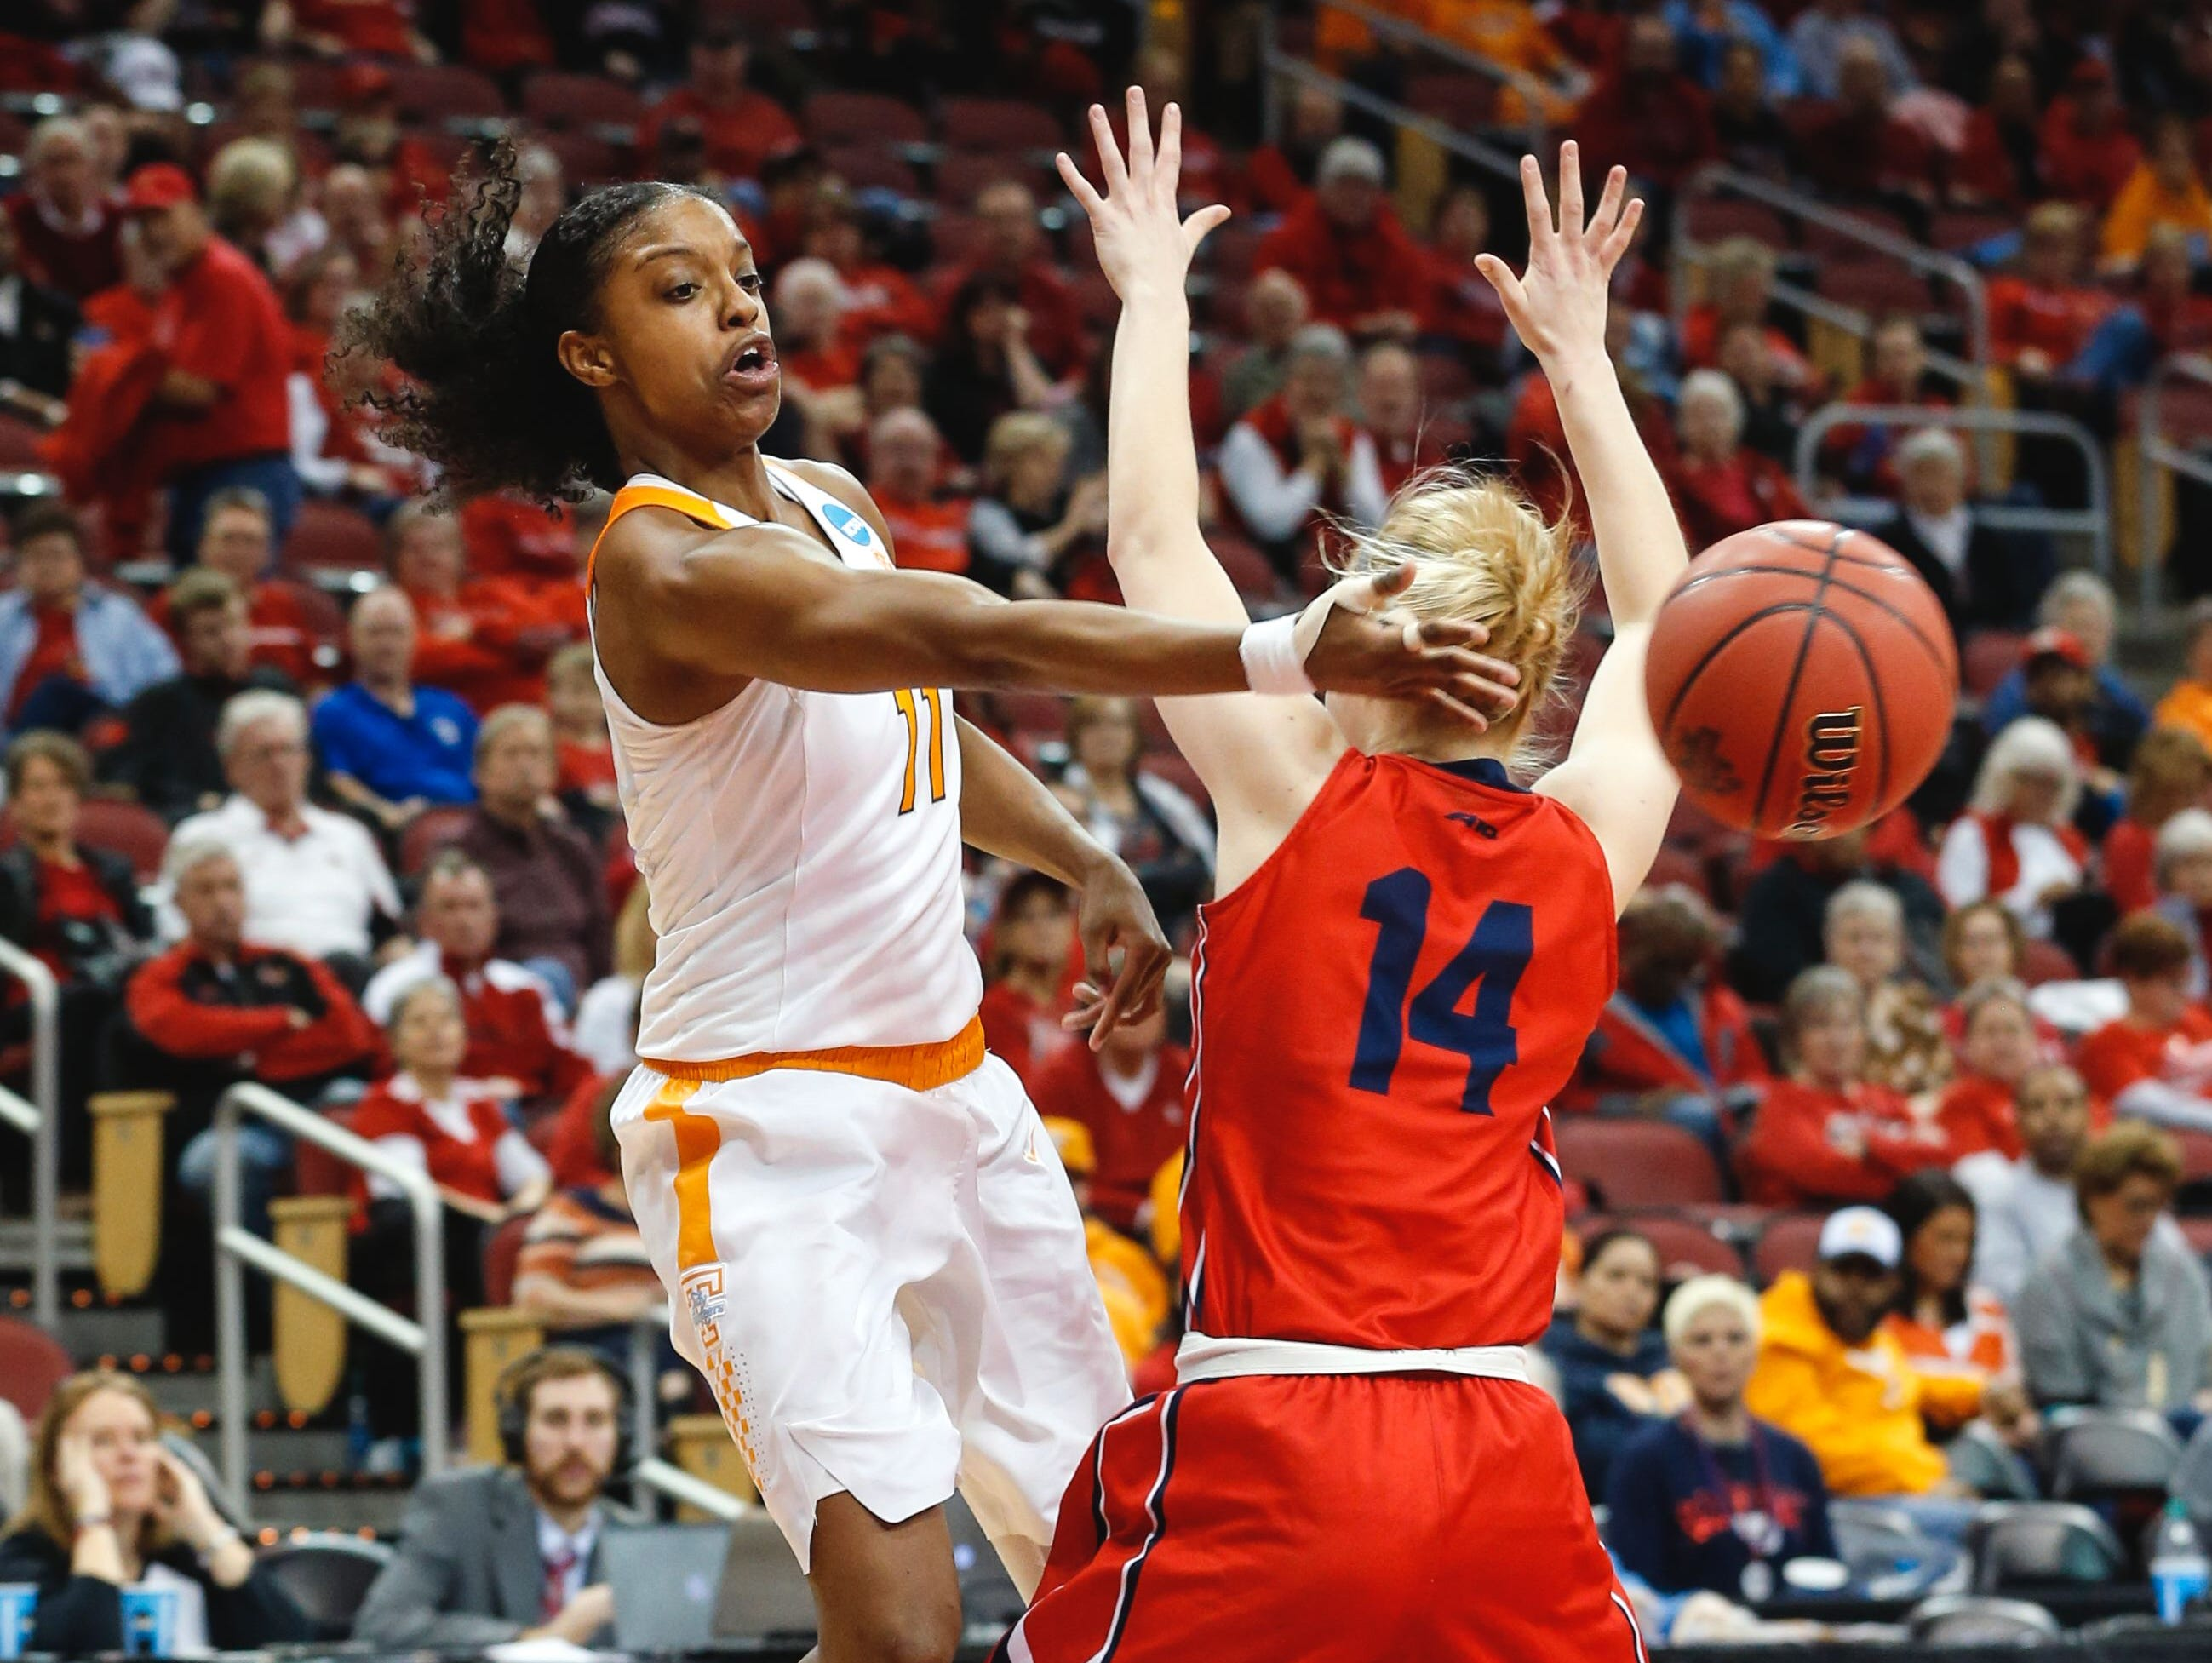 Tennessee's Diamond DeShields whips a pass around Dayton's Jenna Burdette during the first round of the NCAA women's basketball tournament on Saturday, March 18, in Louisville, Ky.